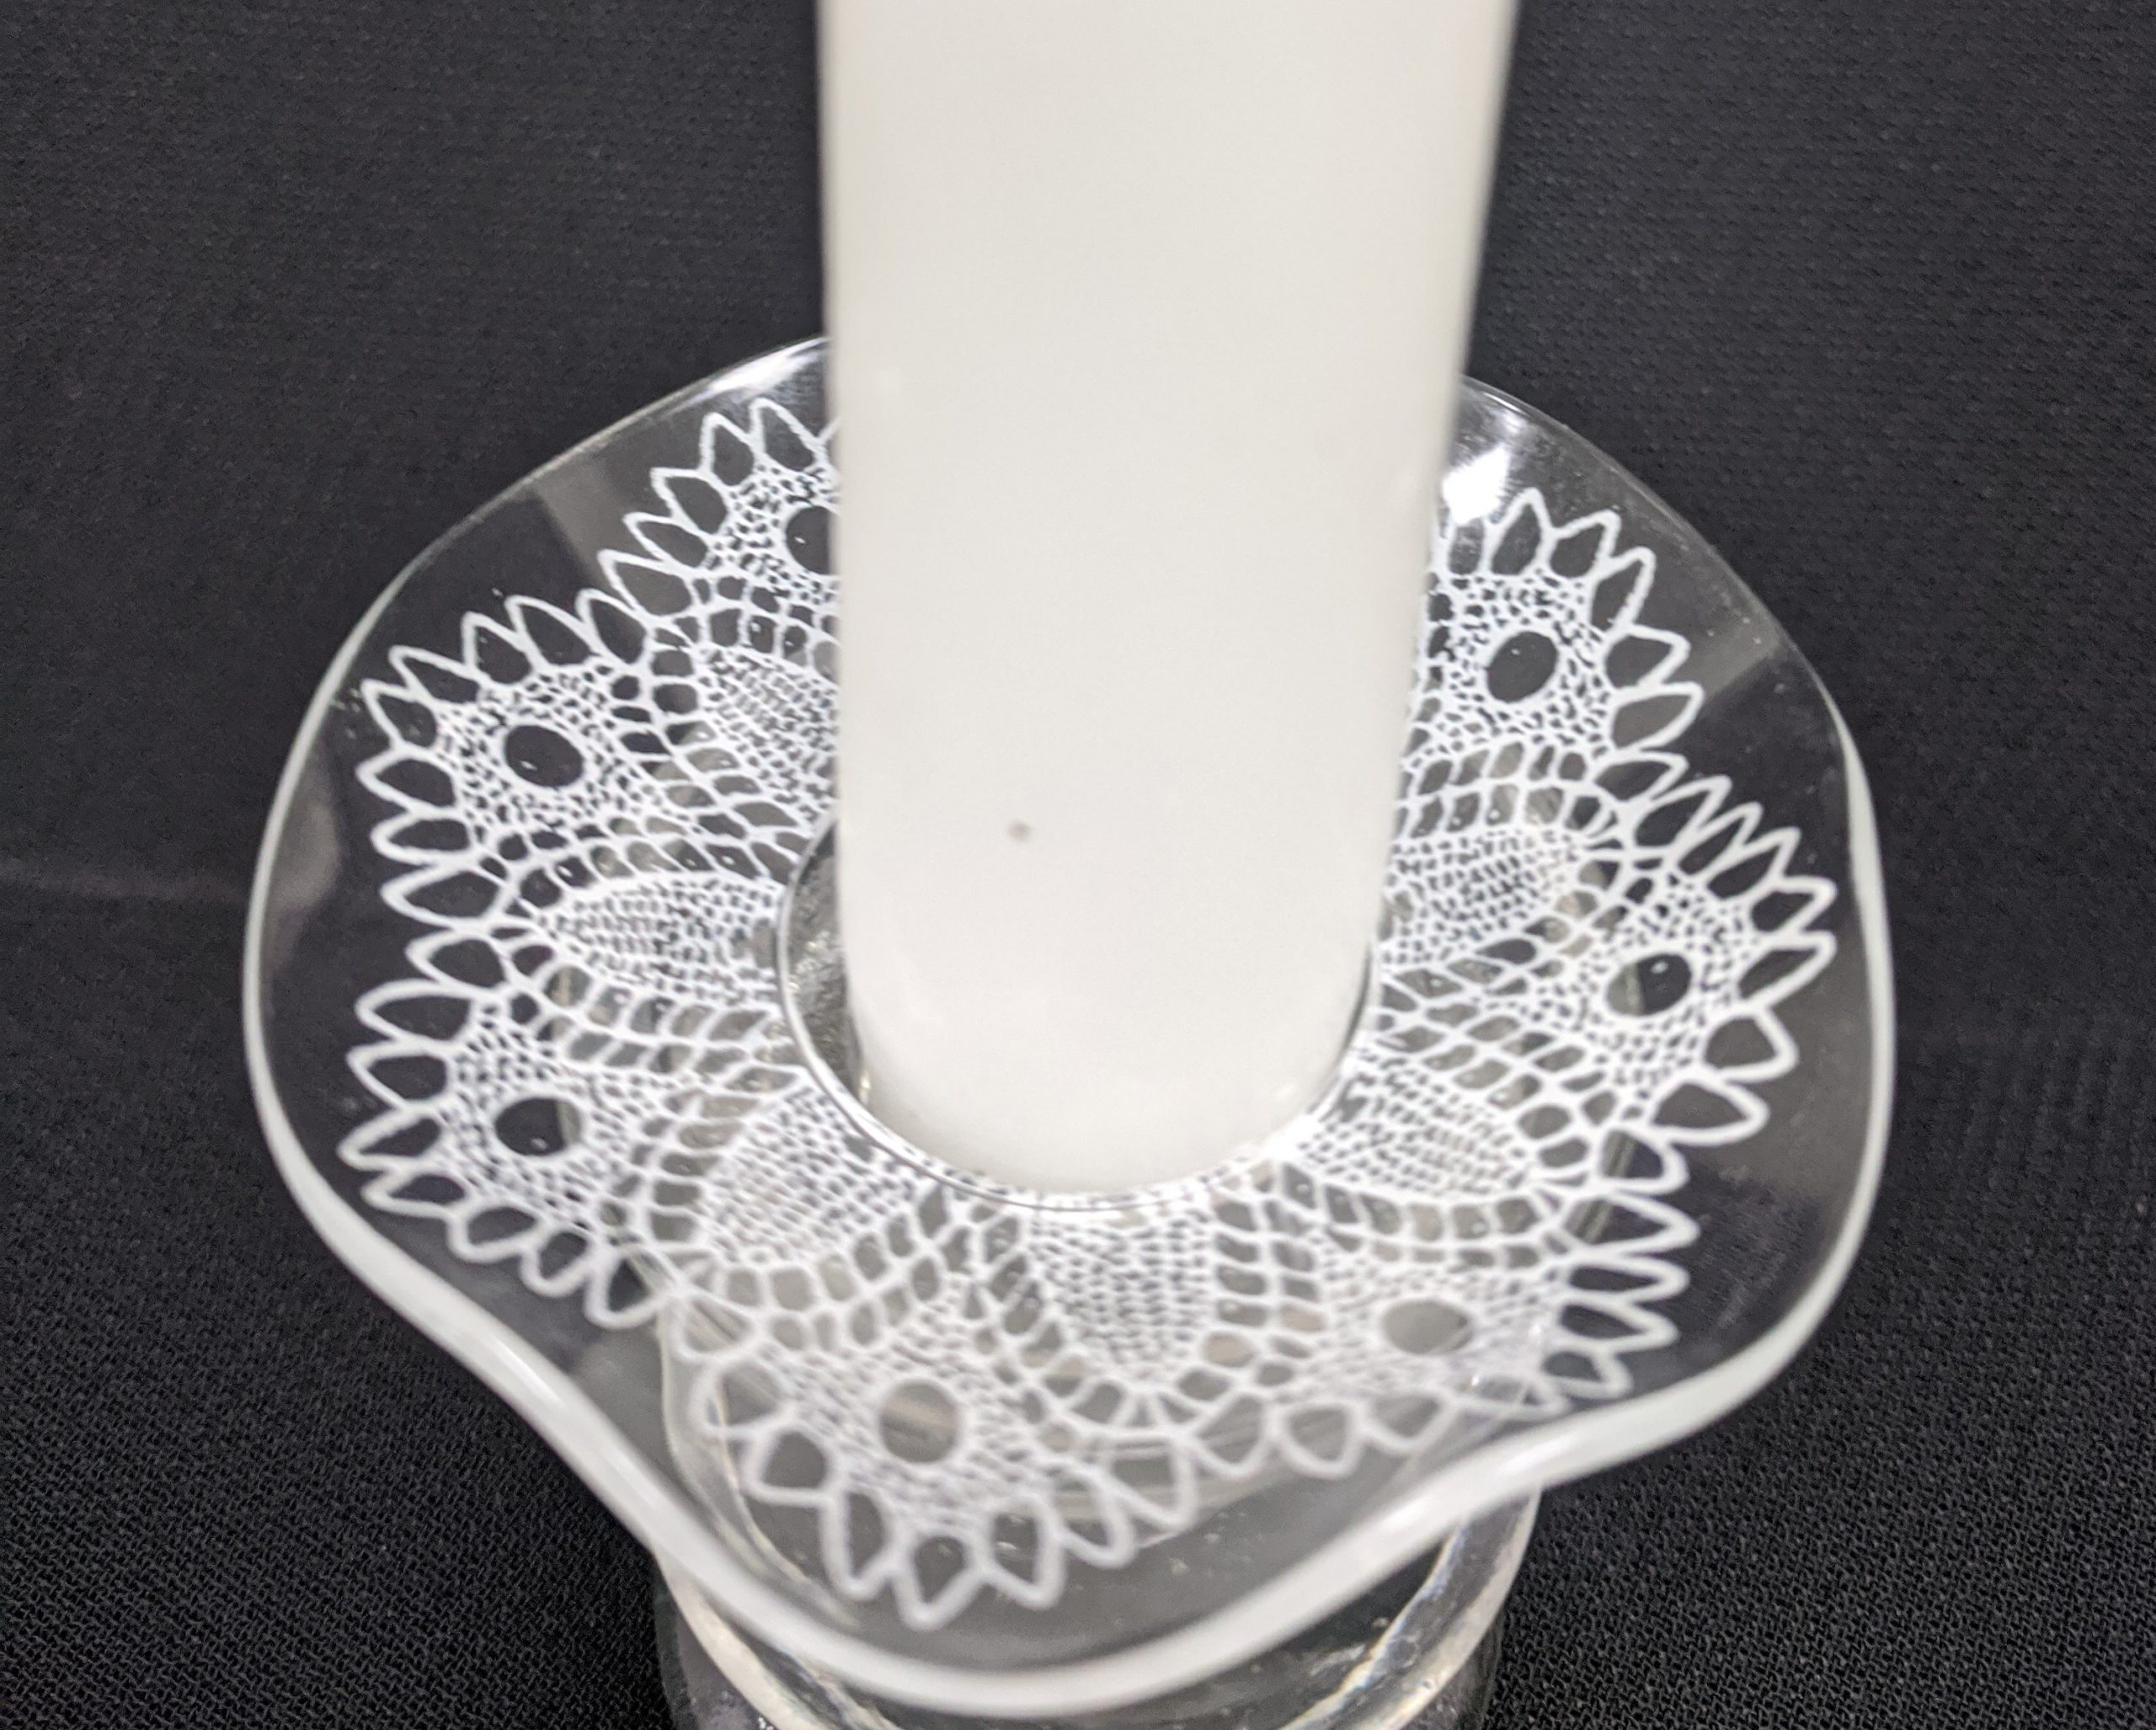 M1921PR/2 Glass bobeche w/Lace Fluted 4